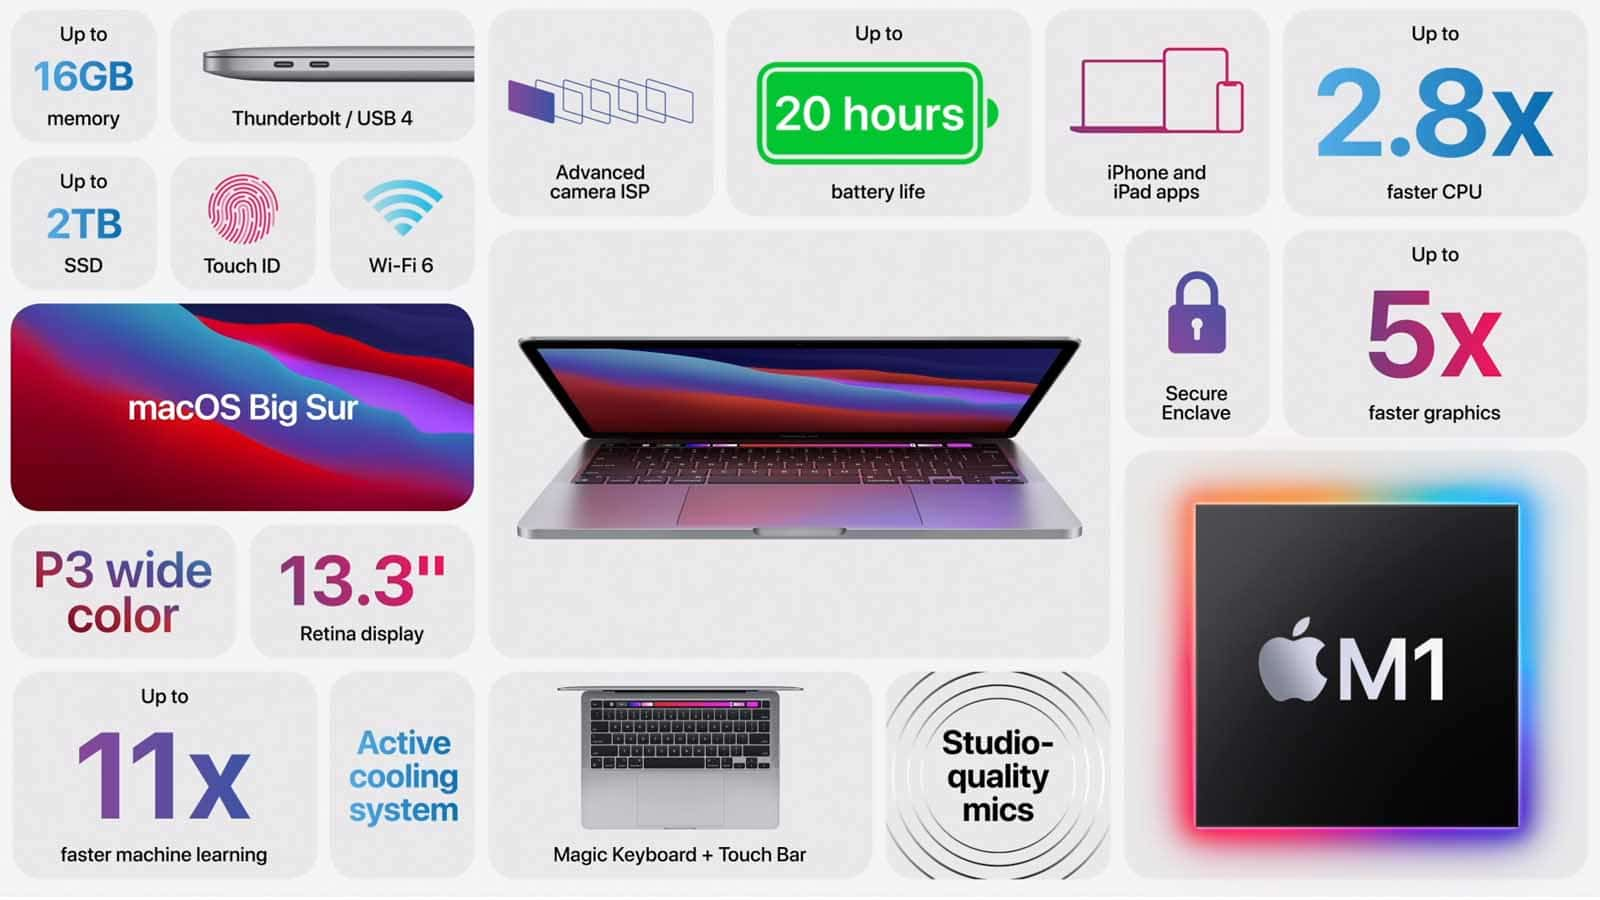 macbook pro stats with m1 chip